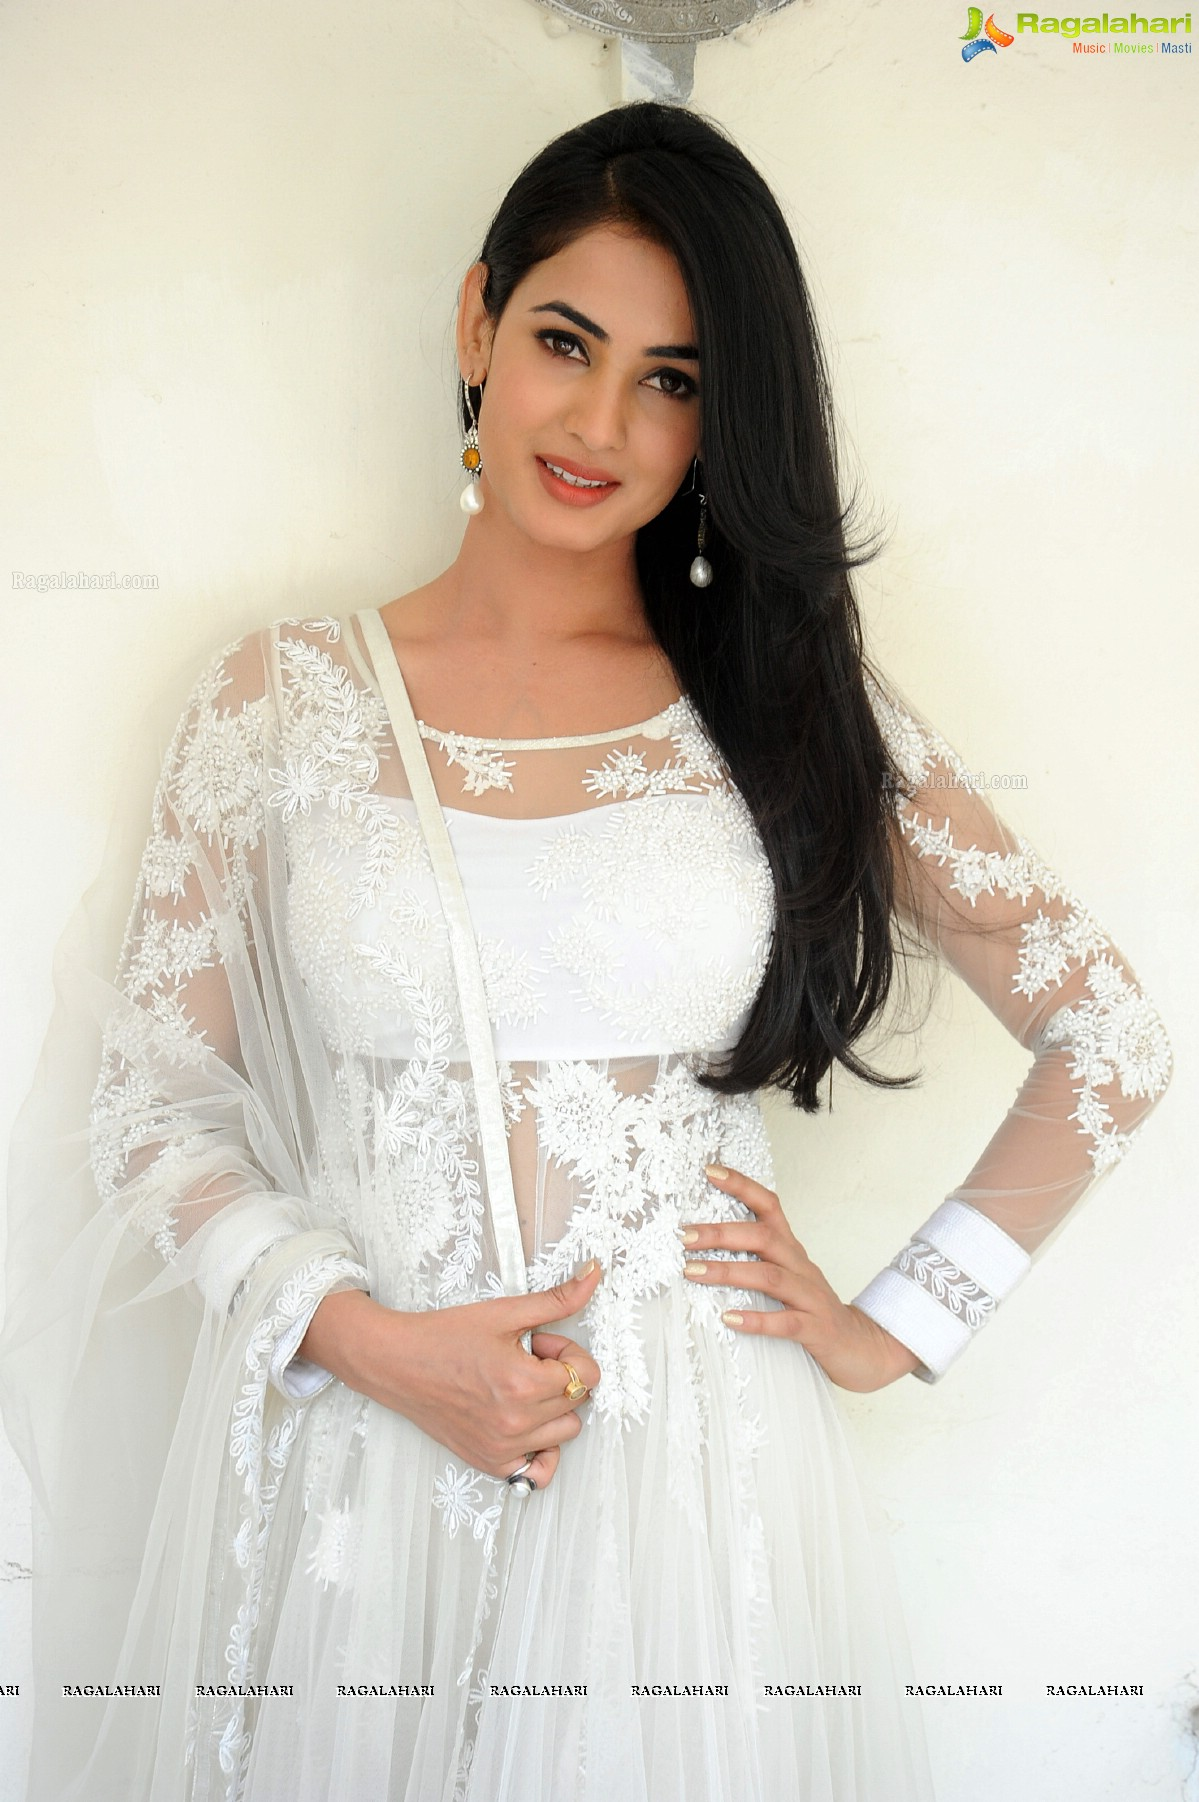 sonal chauhan image 45 | telugu actress wallpapers ,images, photos